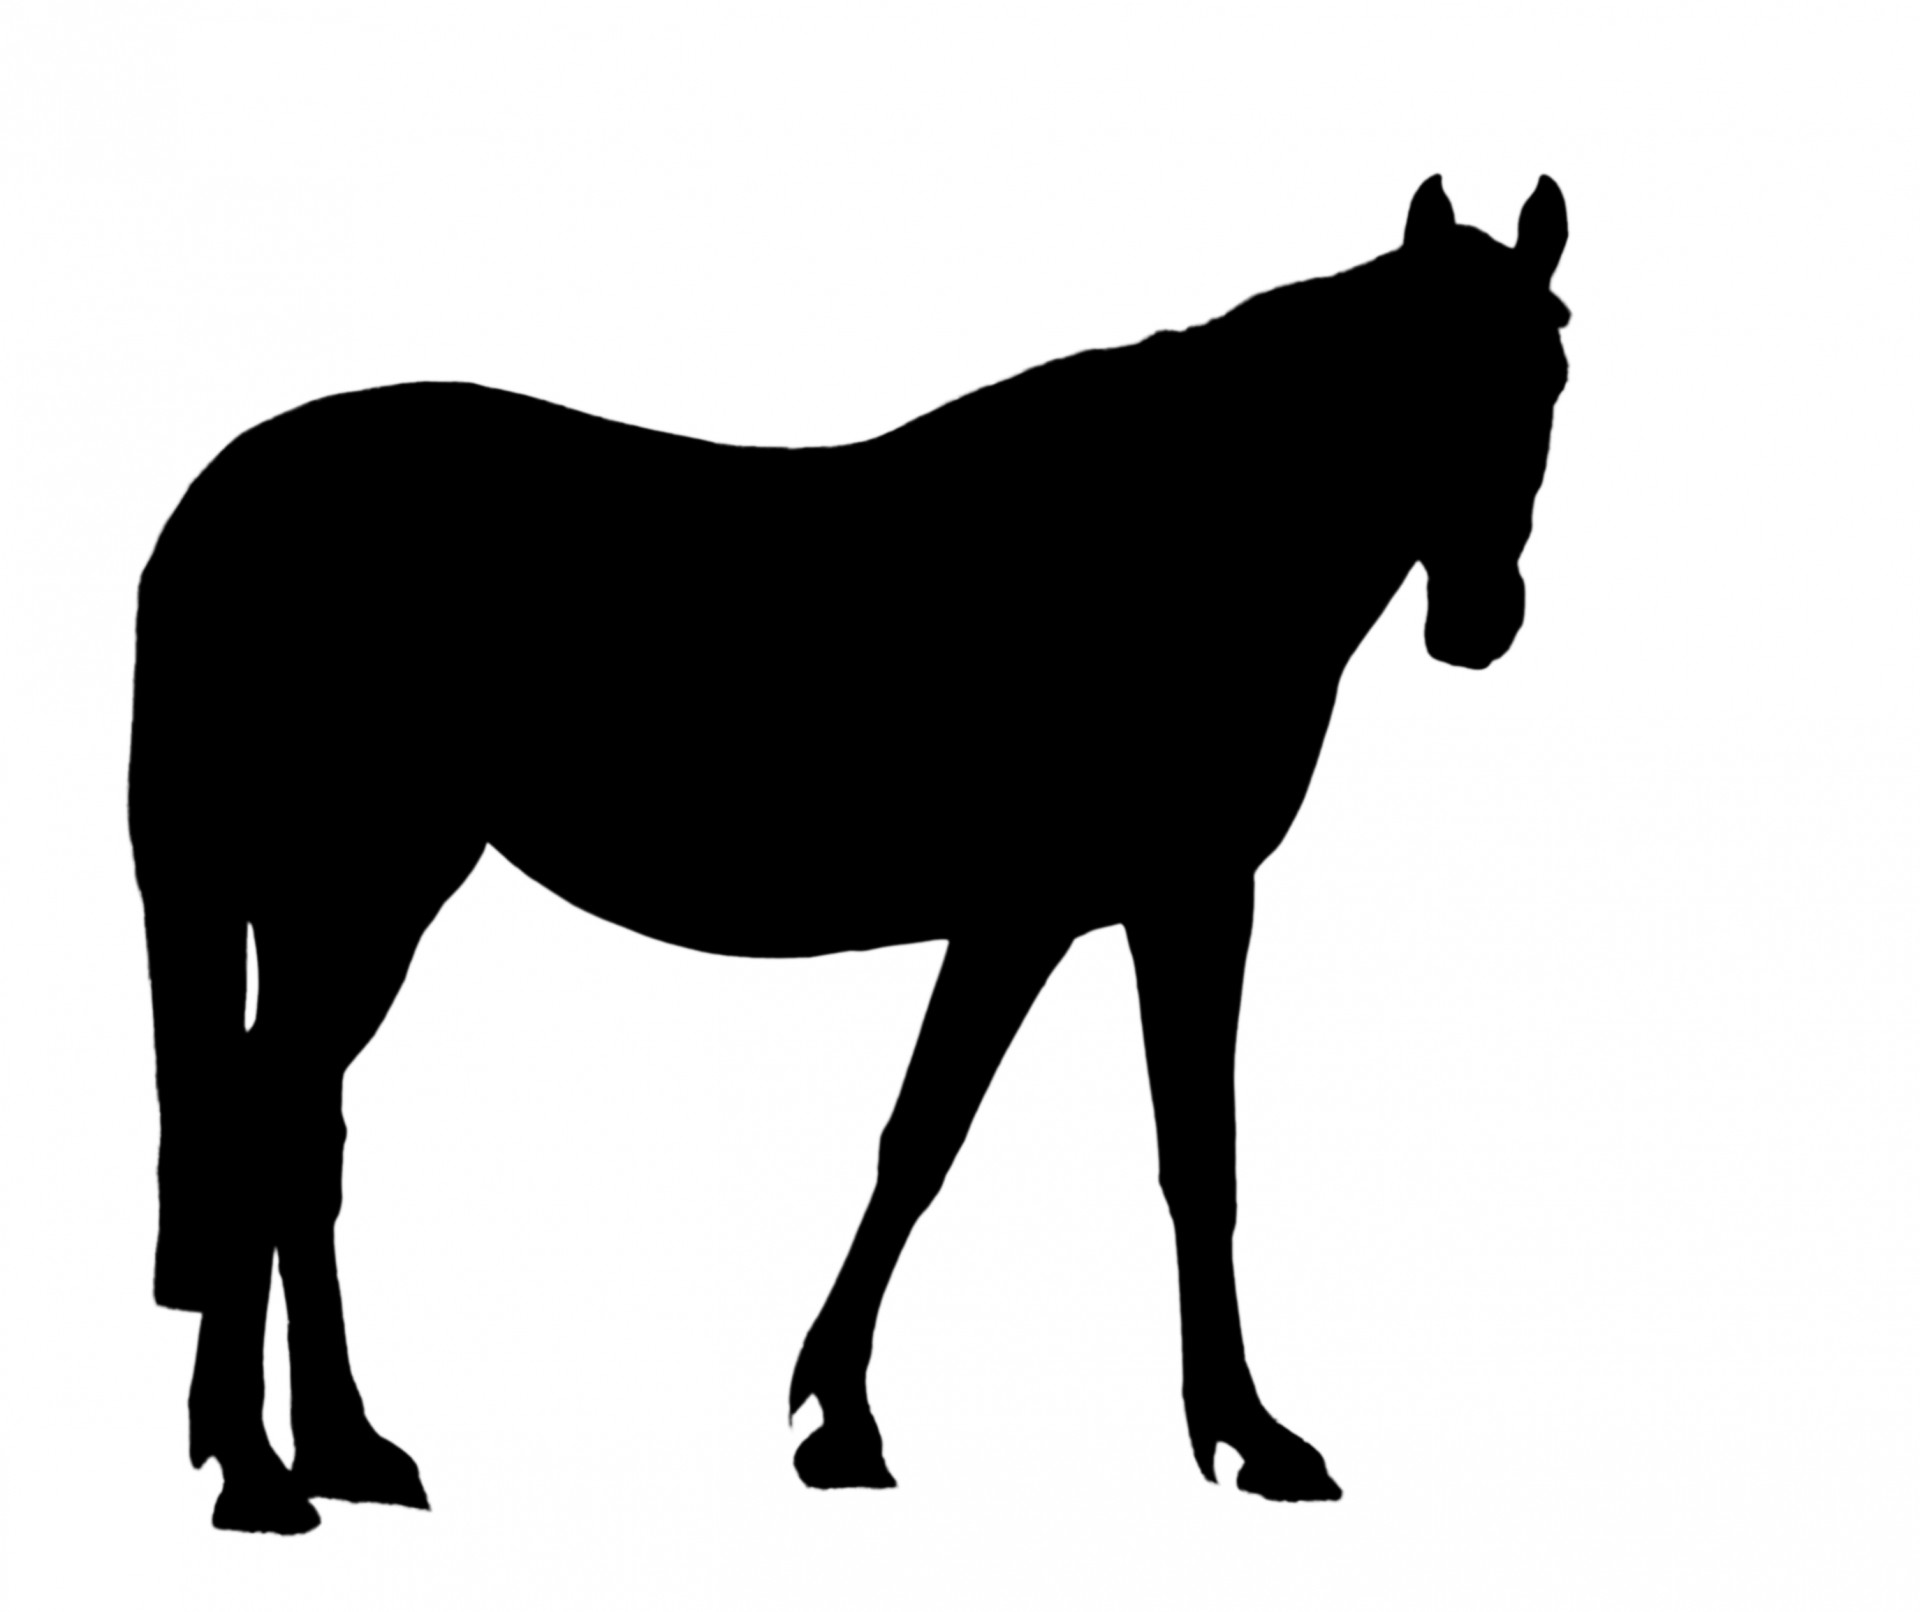 horse silhouette clip art at getdrawings com free for personal use rh getdrawings com clipart of a horse running horseshoe clipart